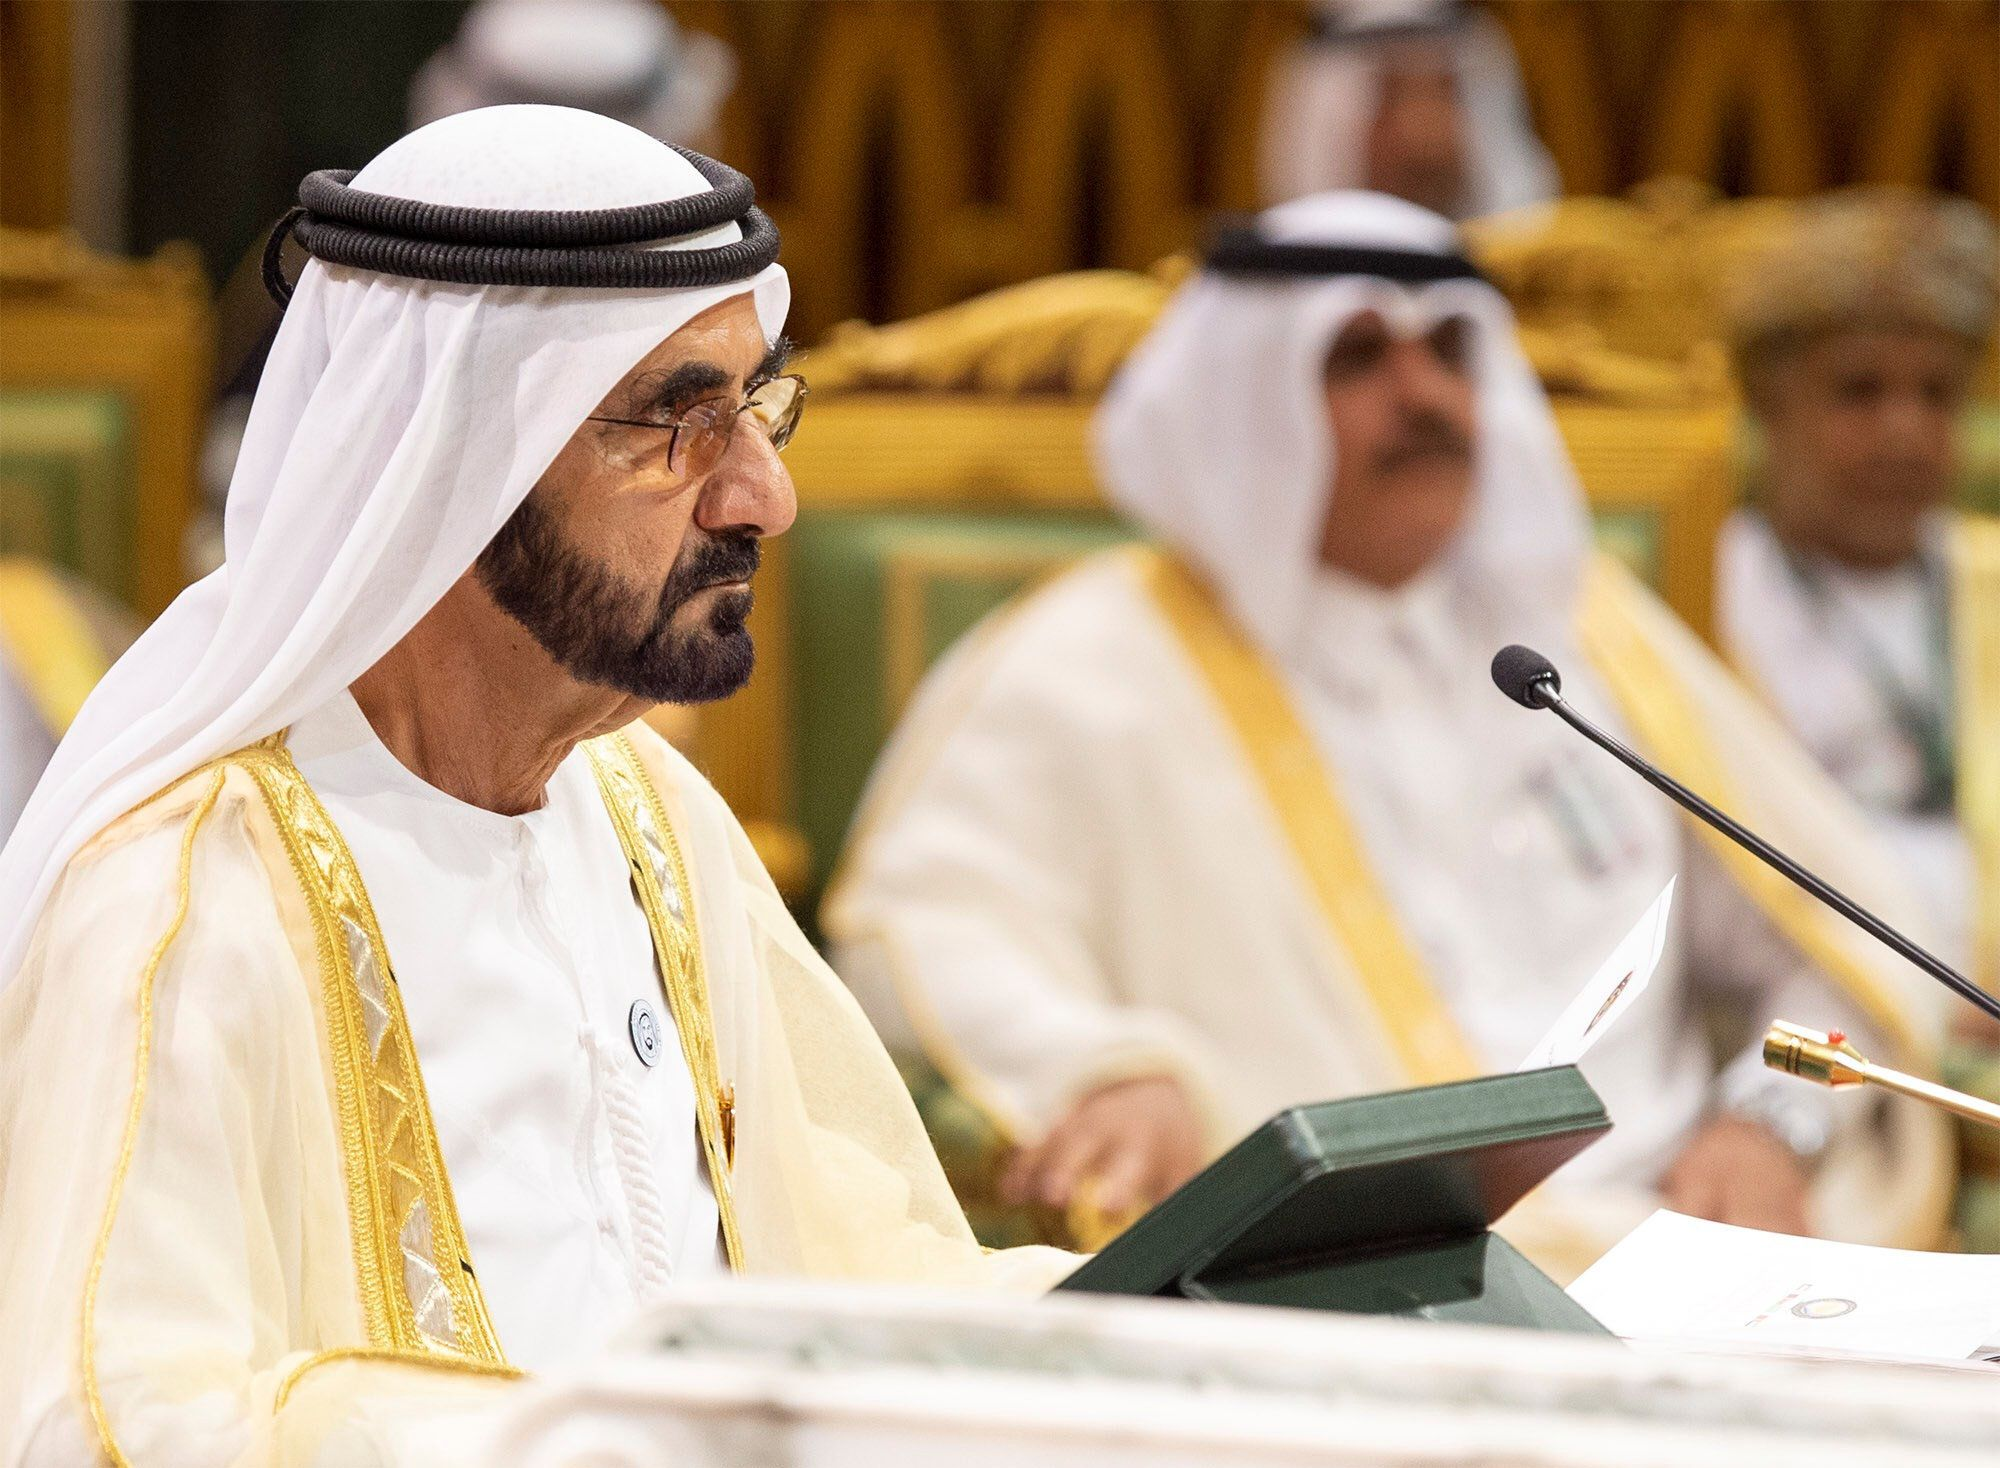 Prime Minister and Vice-President of the United Arab Emirates and ruler of Dubai Sheikh Mohammed bin Rashid al-Maktoum attends the Gulf Cooperation Council's (GCC) Summit in Riyadh, Saudi Arabia December 9, 2018. Bandar Algaloud/Courtesy of Saudi Royal Court/Handout via REUTERS   ATTENTION EDITORS - THIS PICTURE WAS PROVIDED BY A THIRD PARTY